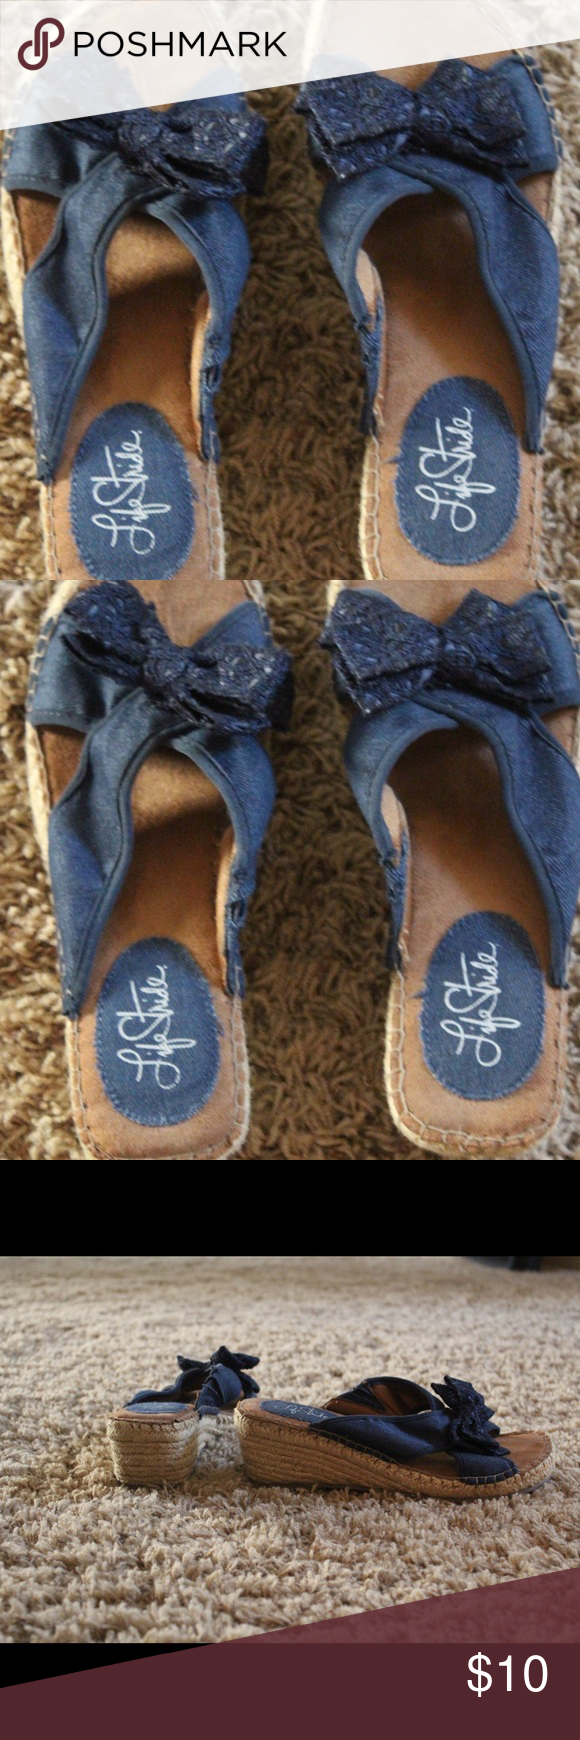 Denim slides with bow. Cute denim wedge slides with bow on top.  Comfy and casual. Life Stride Shoes Sandals